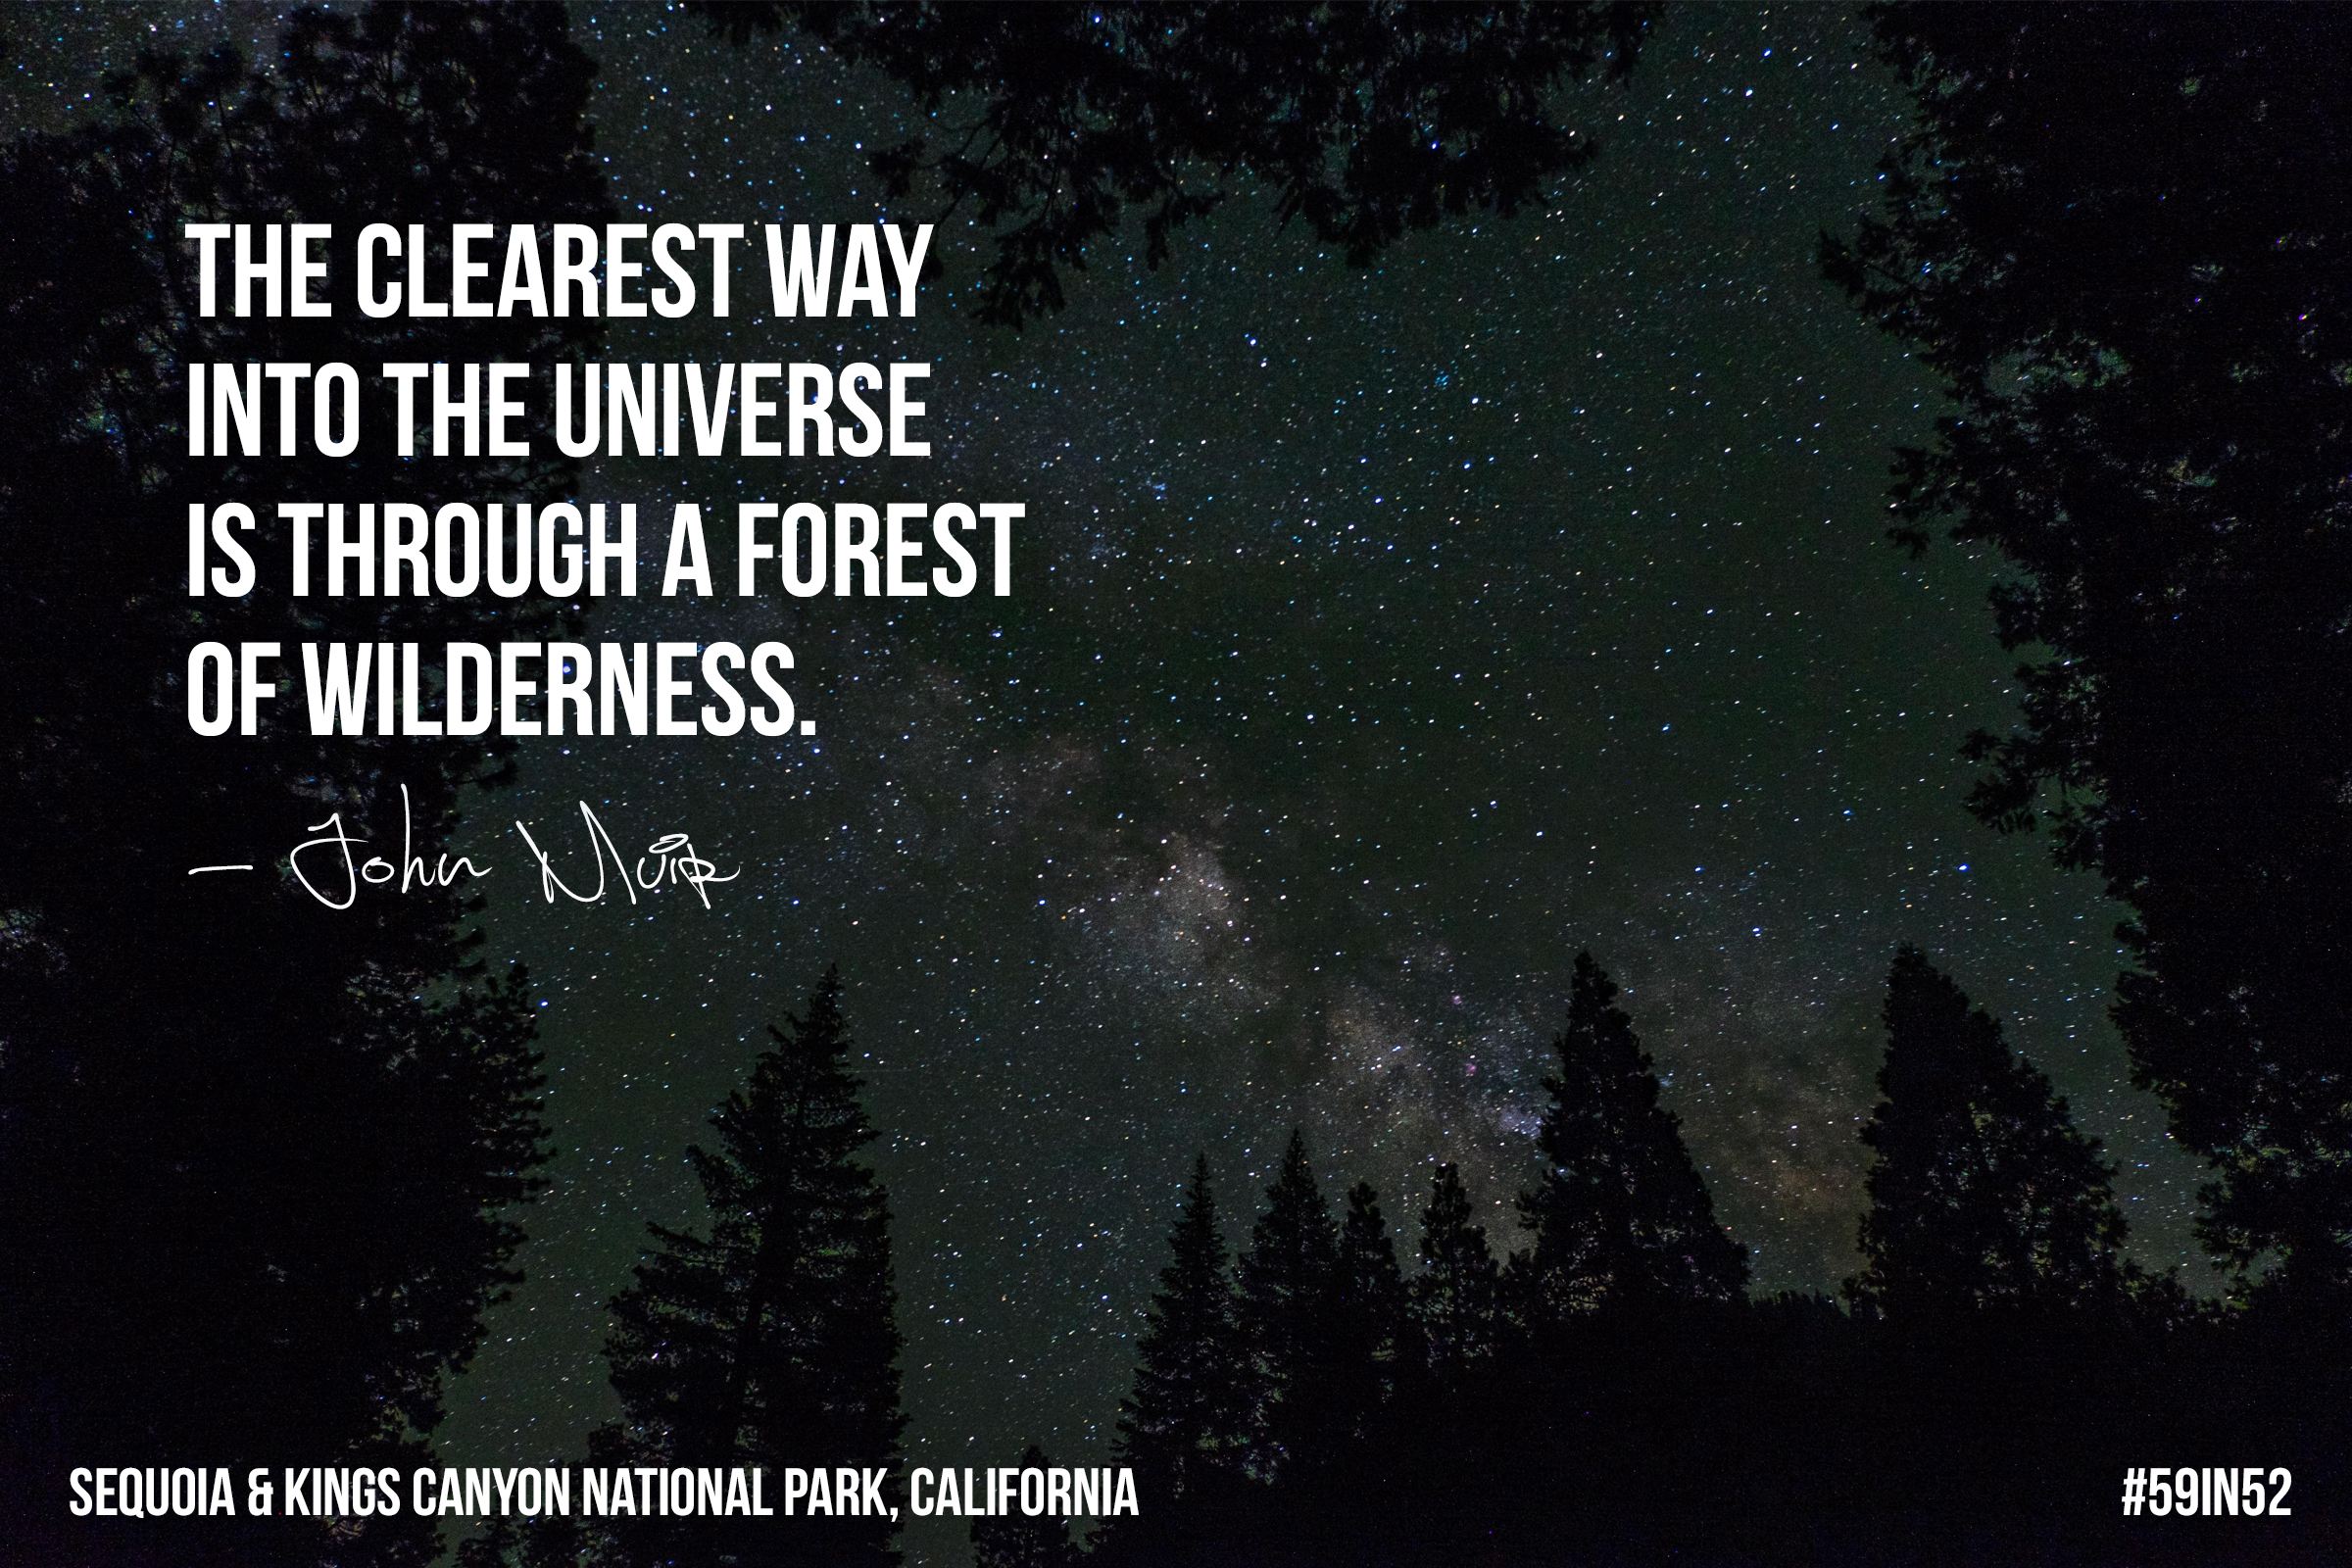 """The clearest way into the universe is through a forest of wilderness."" – John Muir"